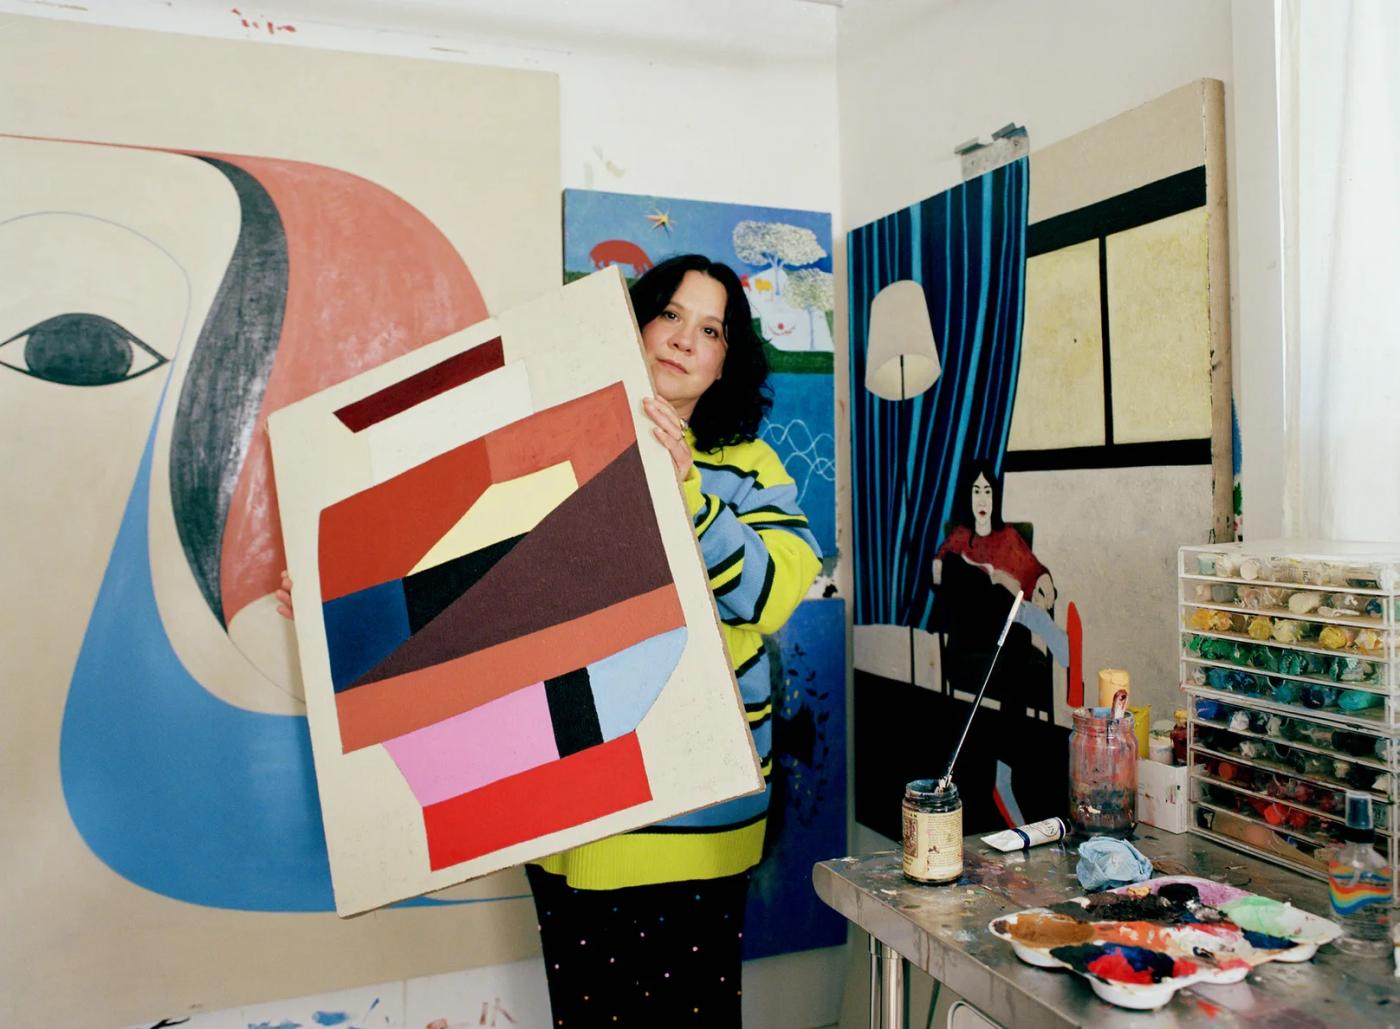 Clare Rojas holding a painting